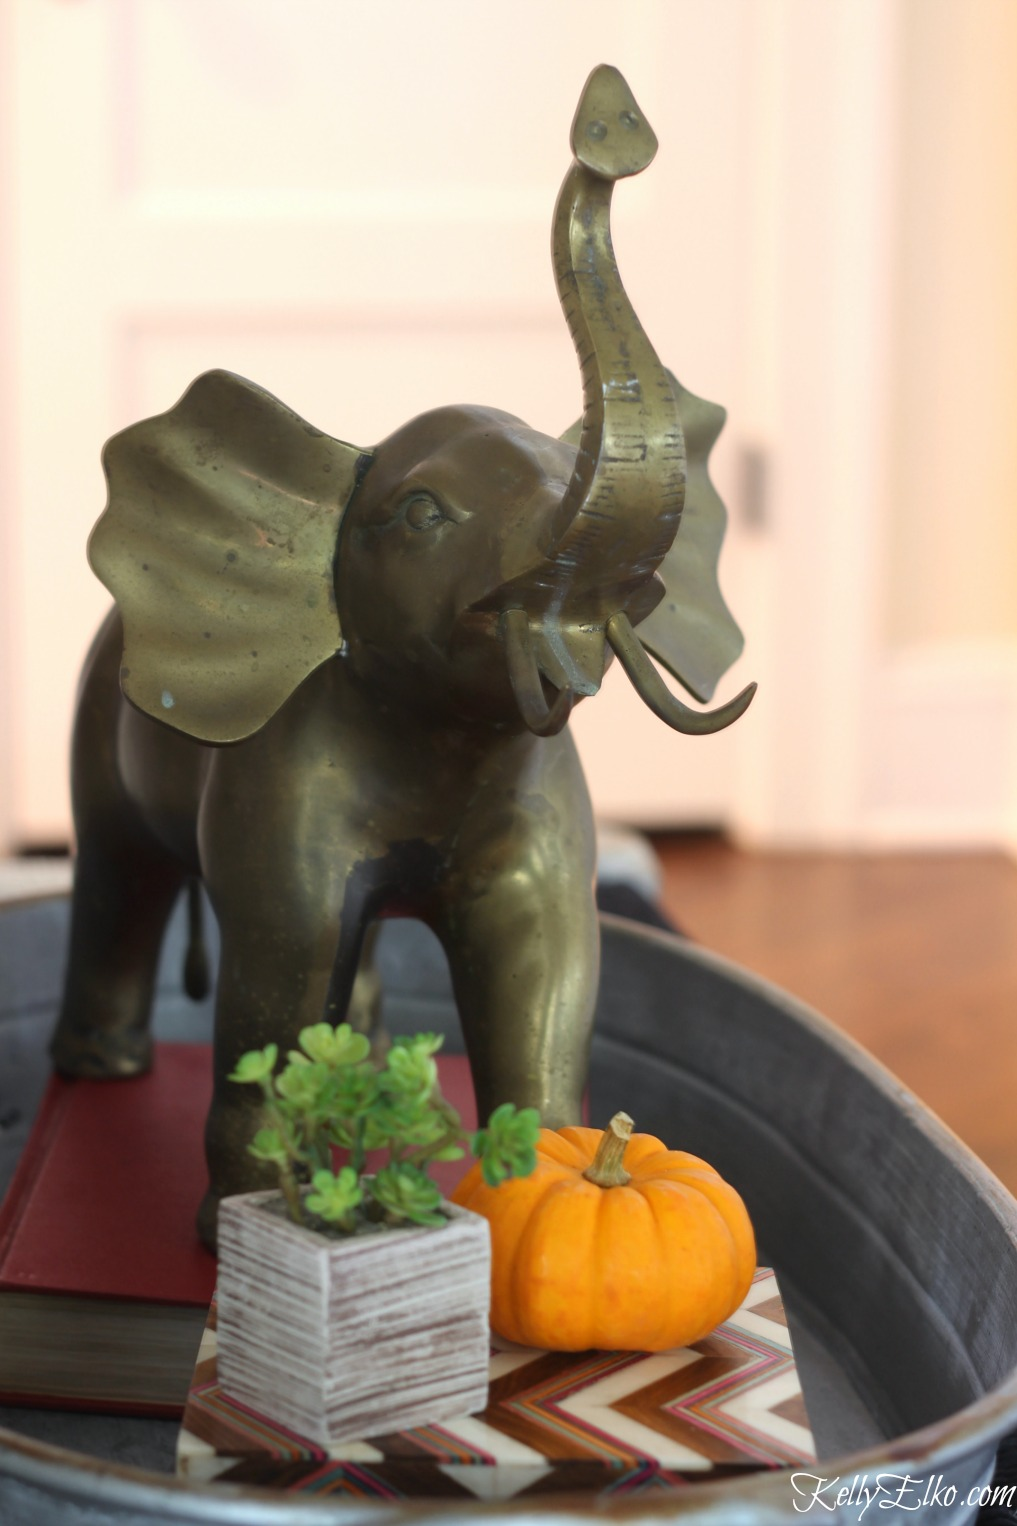 Brass is back! Love this huge vintage brass elephant kellyelko.com